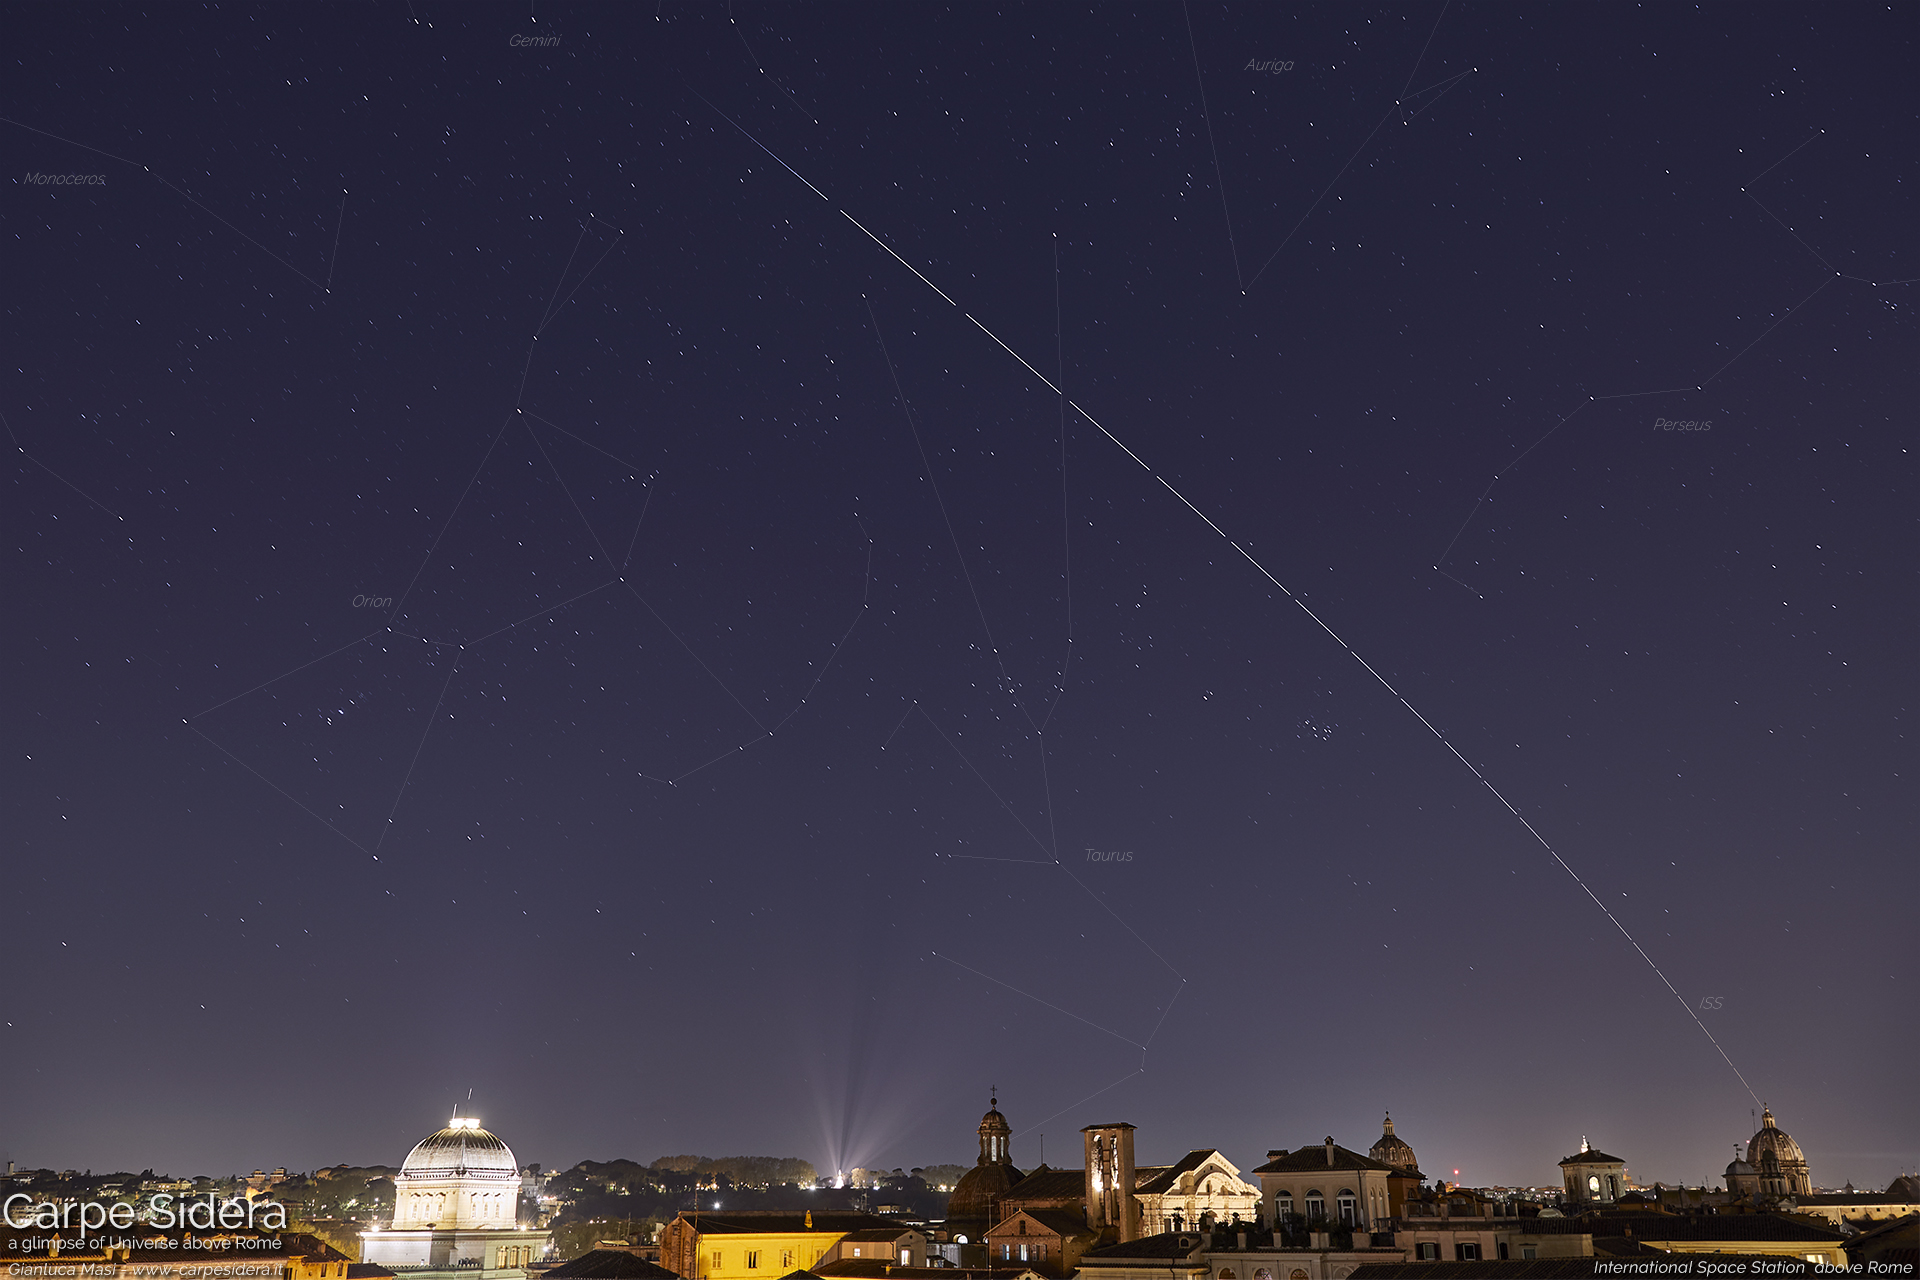 The International Space Station is flying over Rome, on 5 Apr. 2019